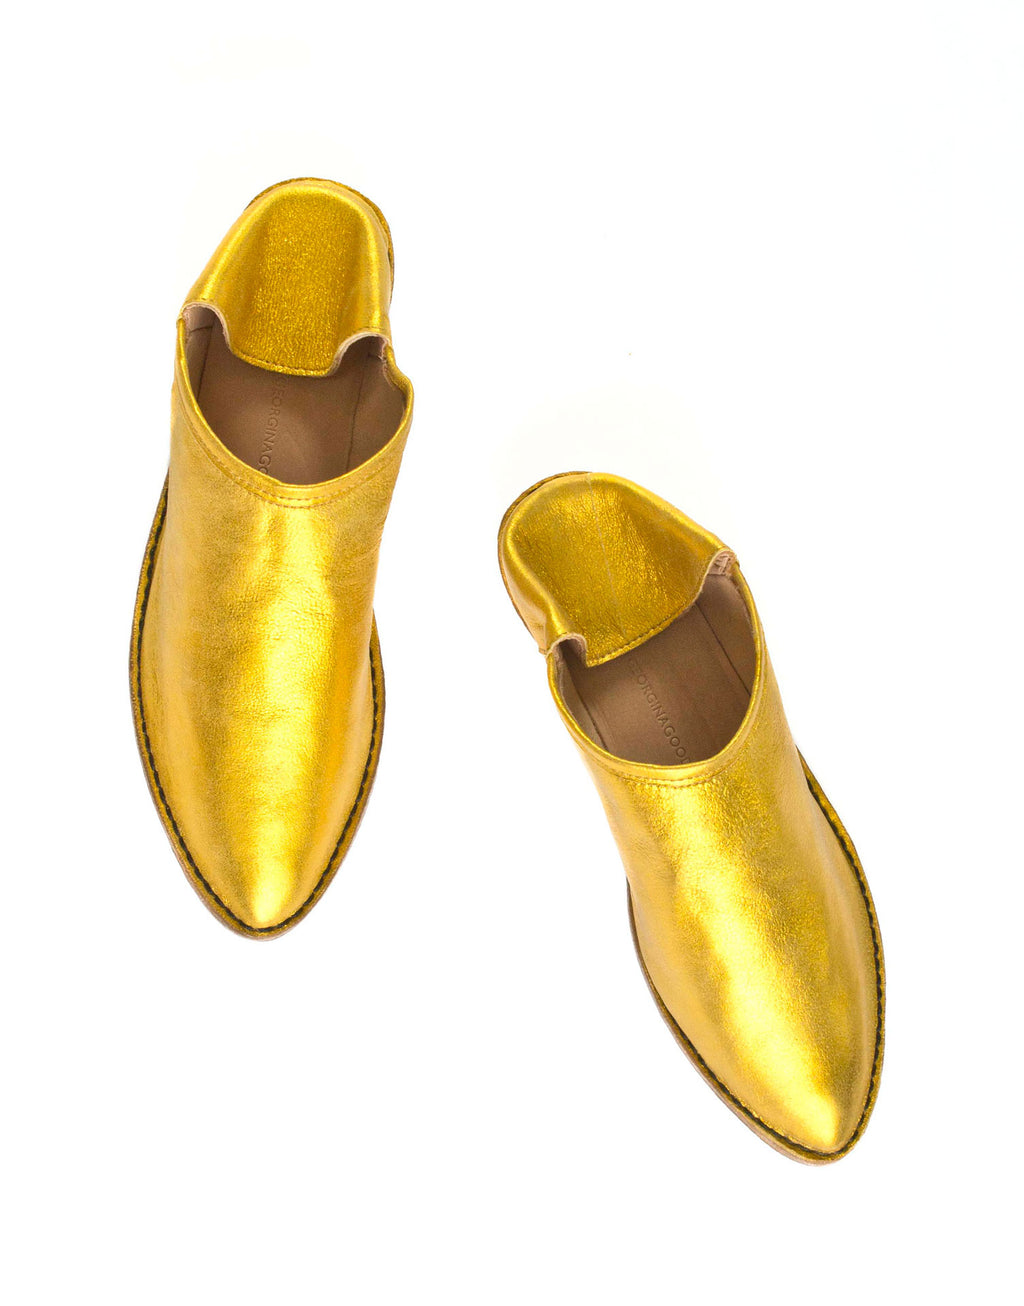 Slip on slipper shoe by designer Georgina Goodman in a vibrant metallic yellow suede, this is an unworn selling sample sold at a discounted price, effortless style for any age